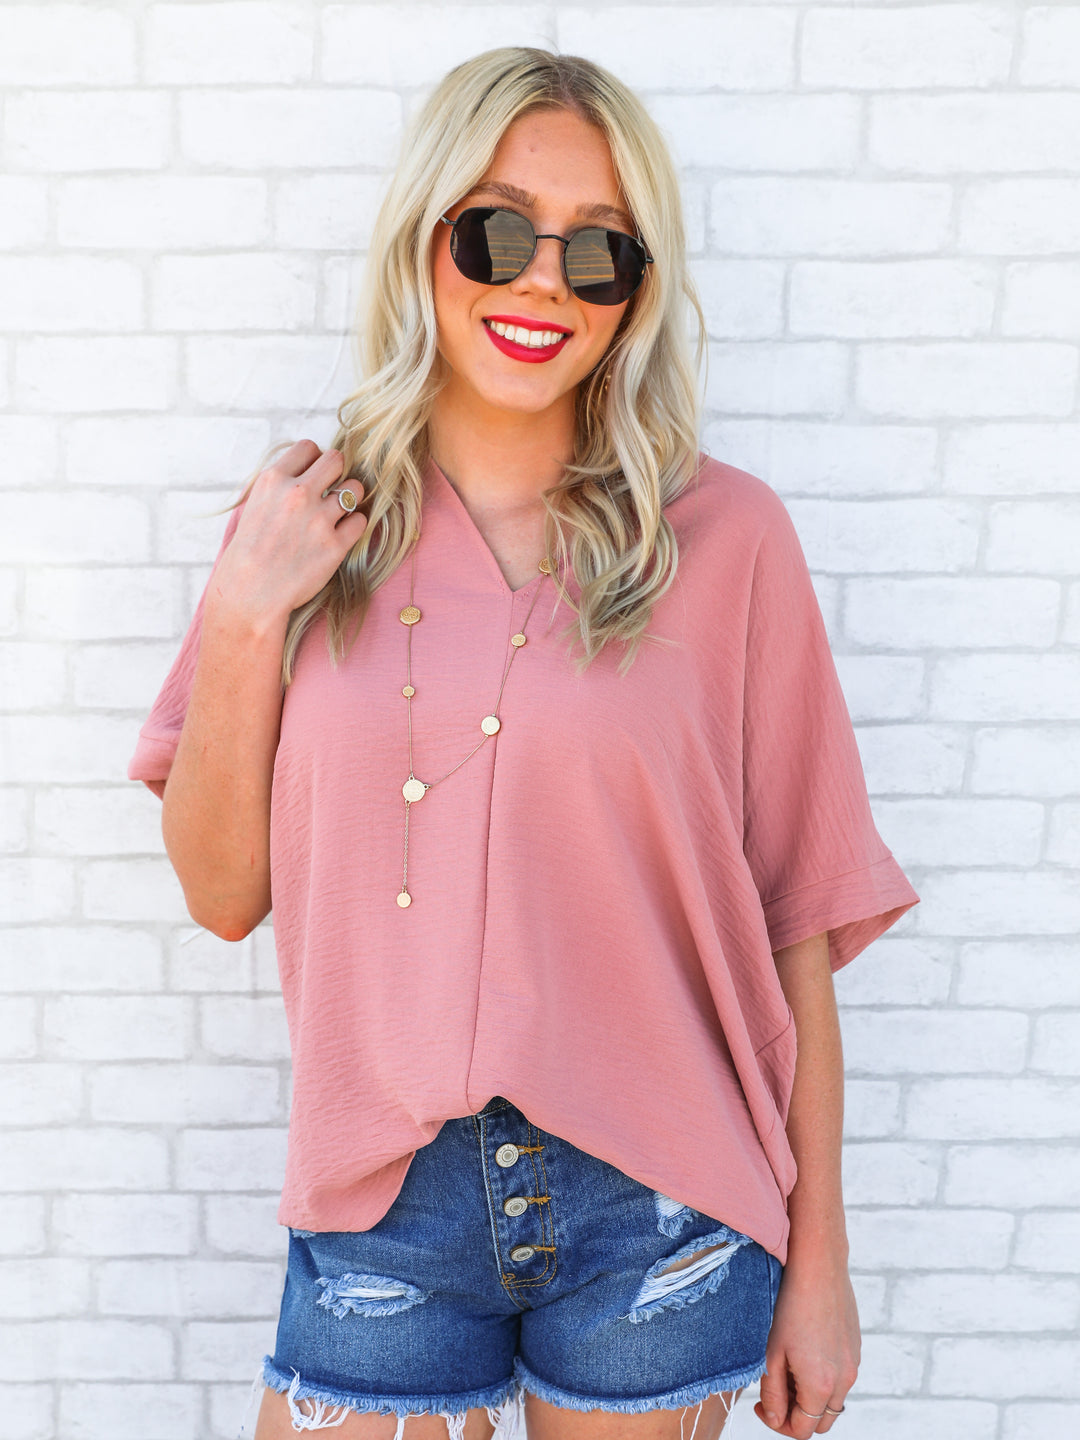 The CiCi Top